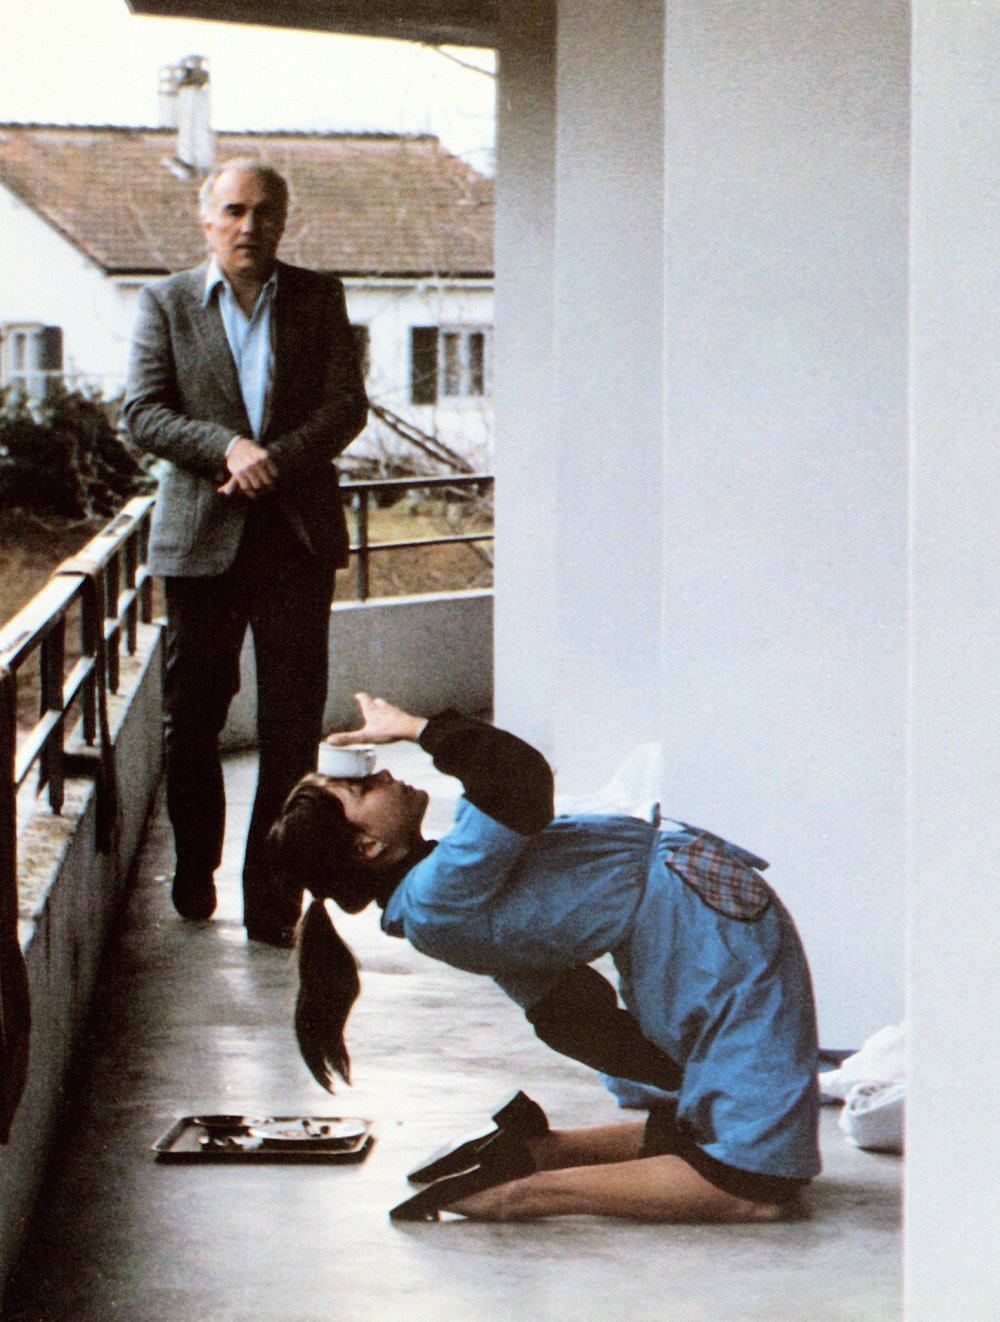 <strong>Passion (1982)</strong>  Made during Jean-Luc Godard's 1980s return to narrative filmmaking, Passion is a film about filmmaking set during the production of a European arthouse movie